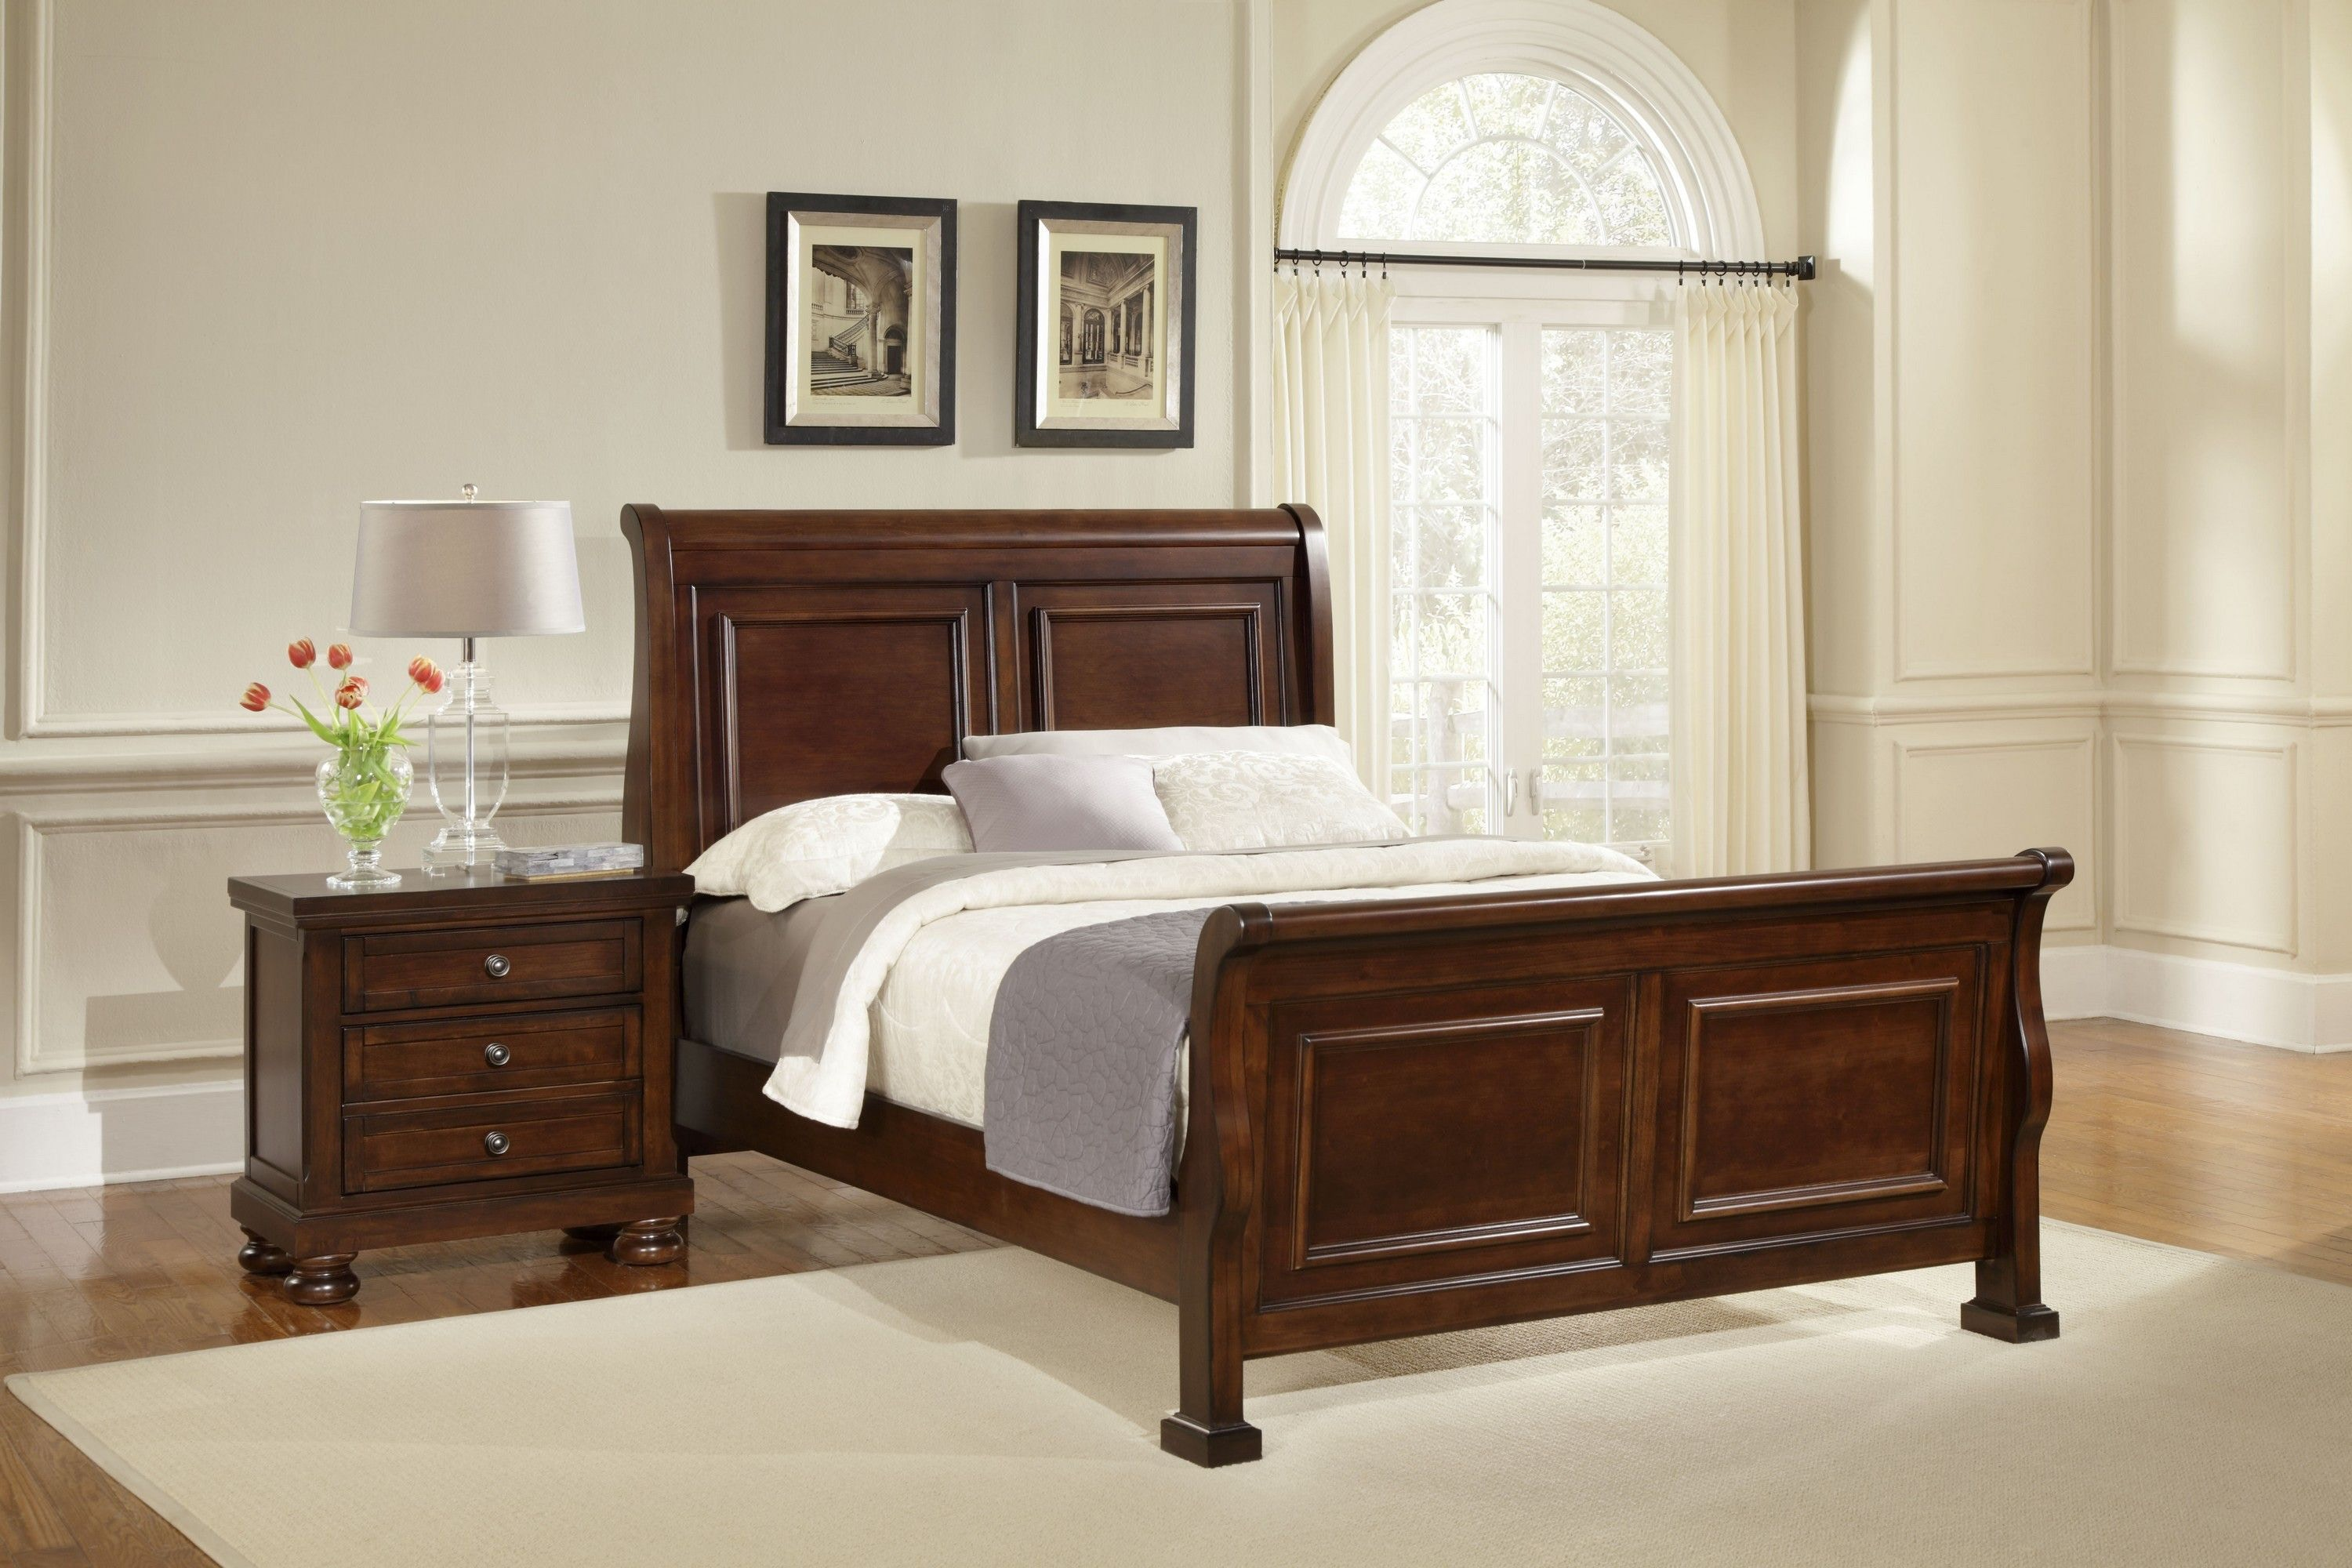 Bassett Furniture Louisville Home Design Ideas and Pictures